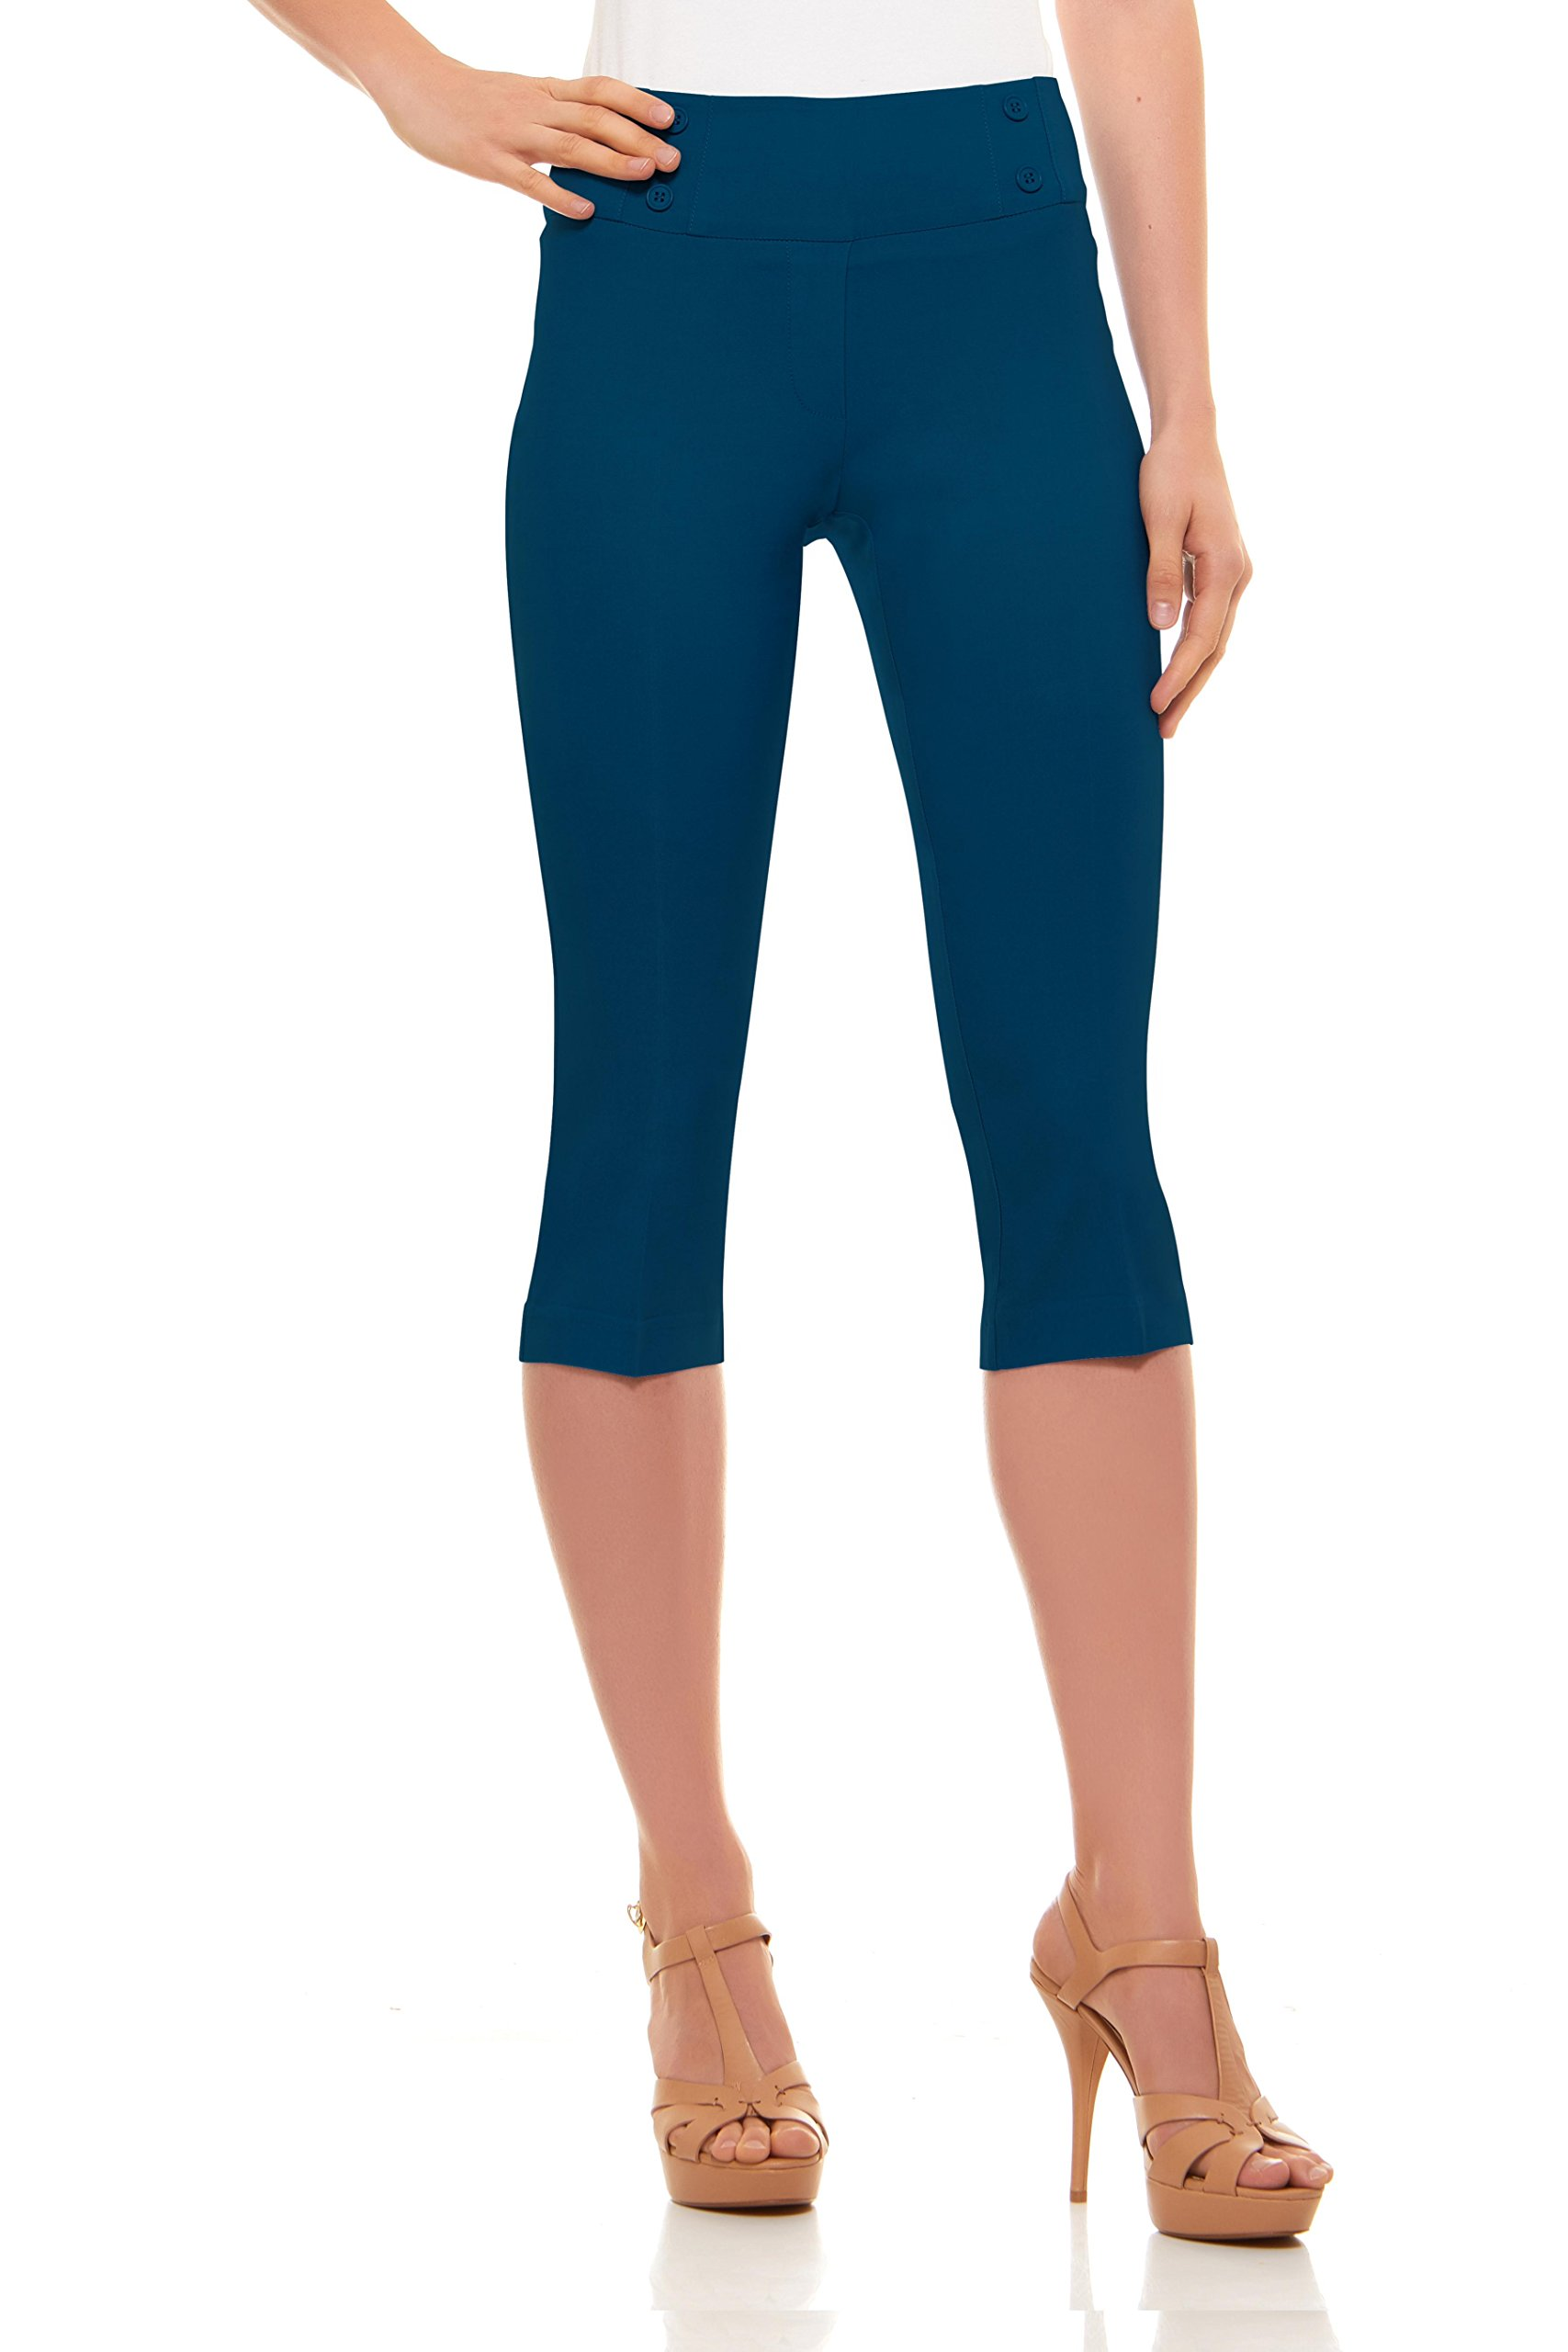 Velucci Womens Classic Fit Capri Pants - Comfortable Pull On Style With Detailed Design, Teal-XXL